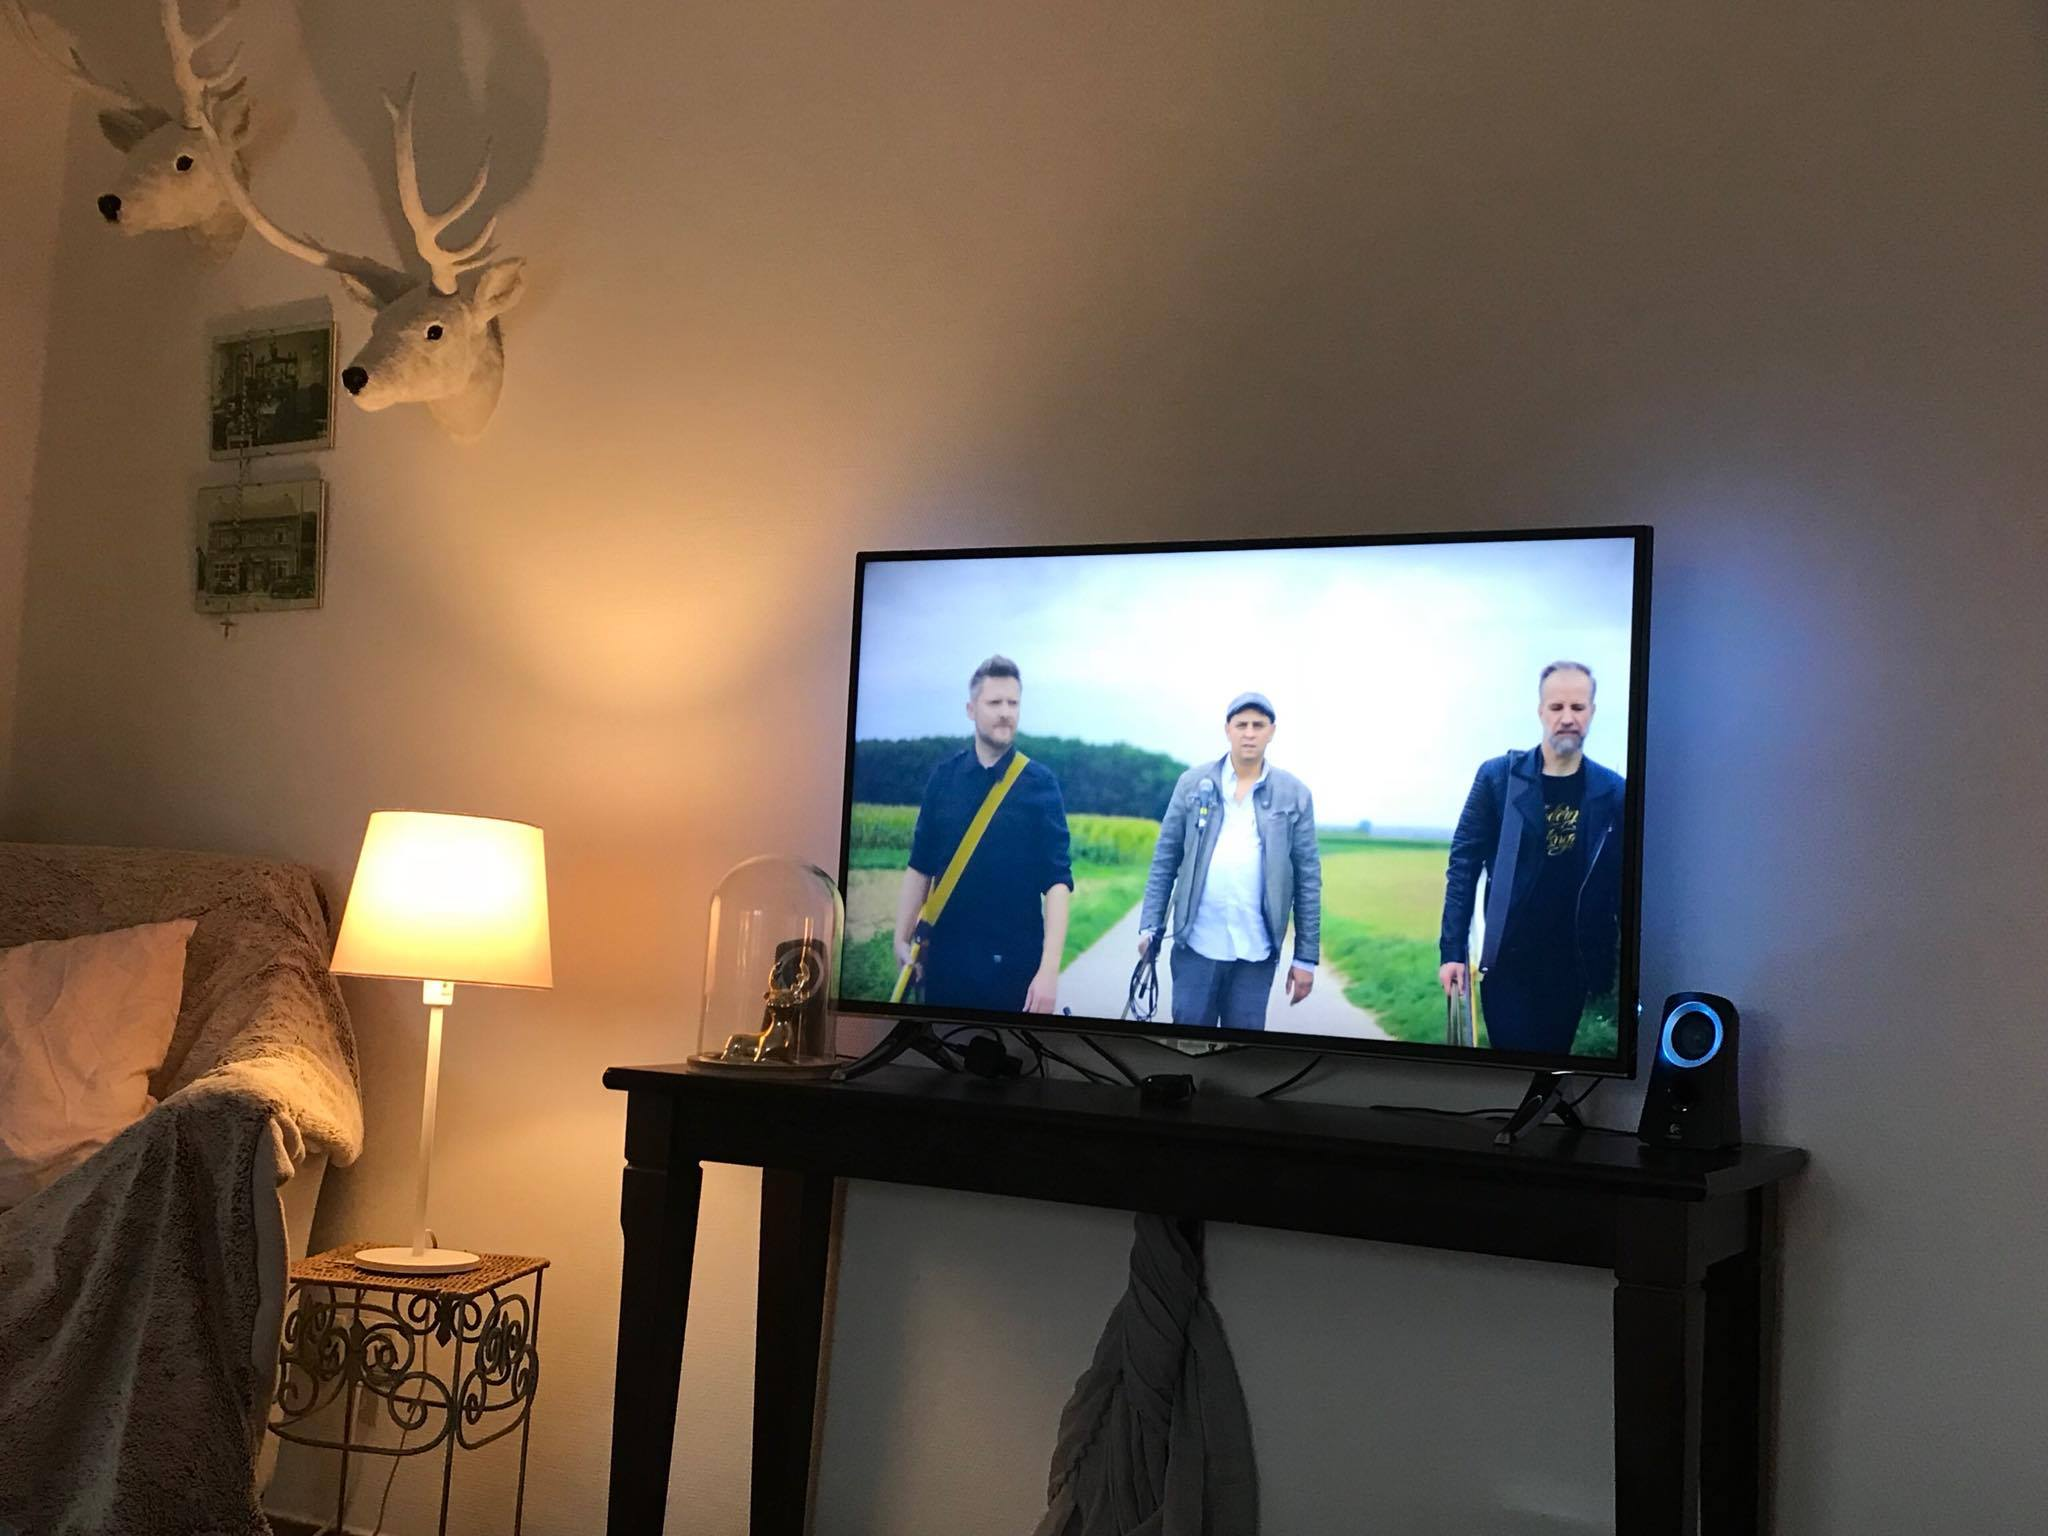 That moment your videoclip is on TV. 🤘 Thank you Sylvie Vanbossele, for sharing your picture with us!